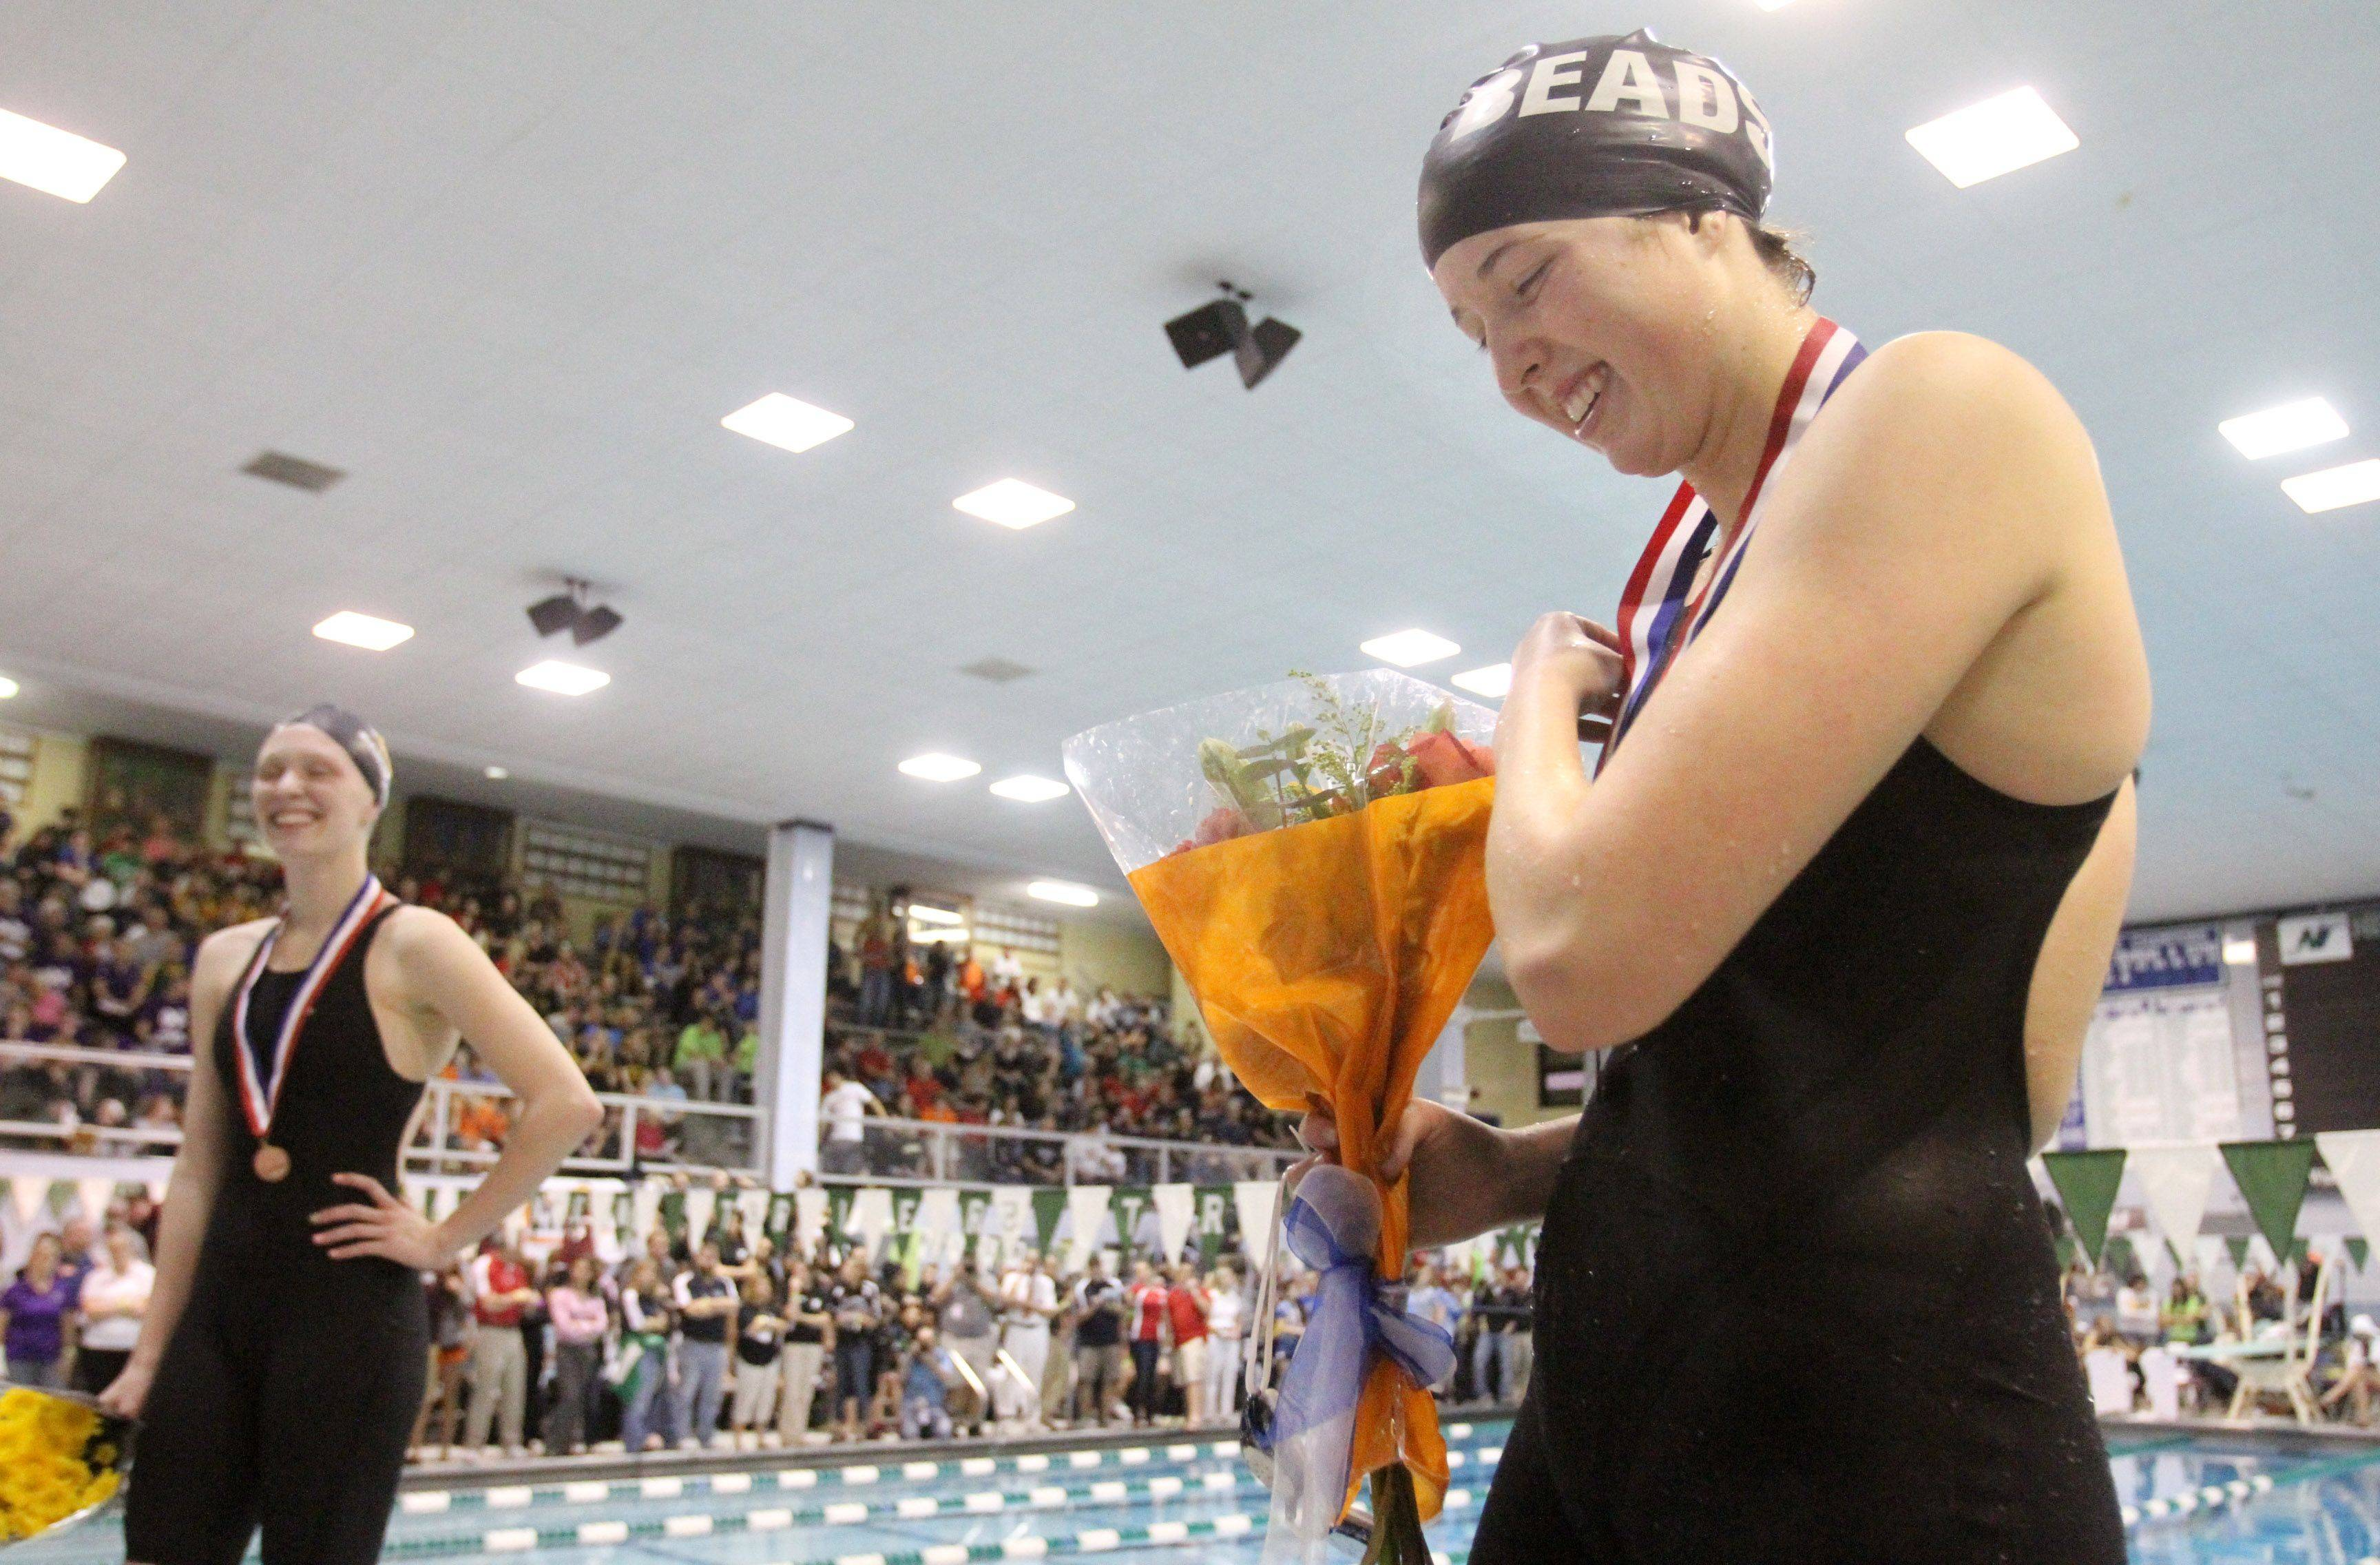 Rosary's Sarah Sykstus placed second in the 200-yard individaul medley at IHSA state championships in Winnetka on Saturday, November 19th.